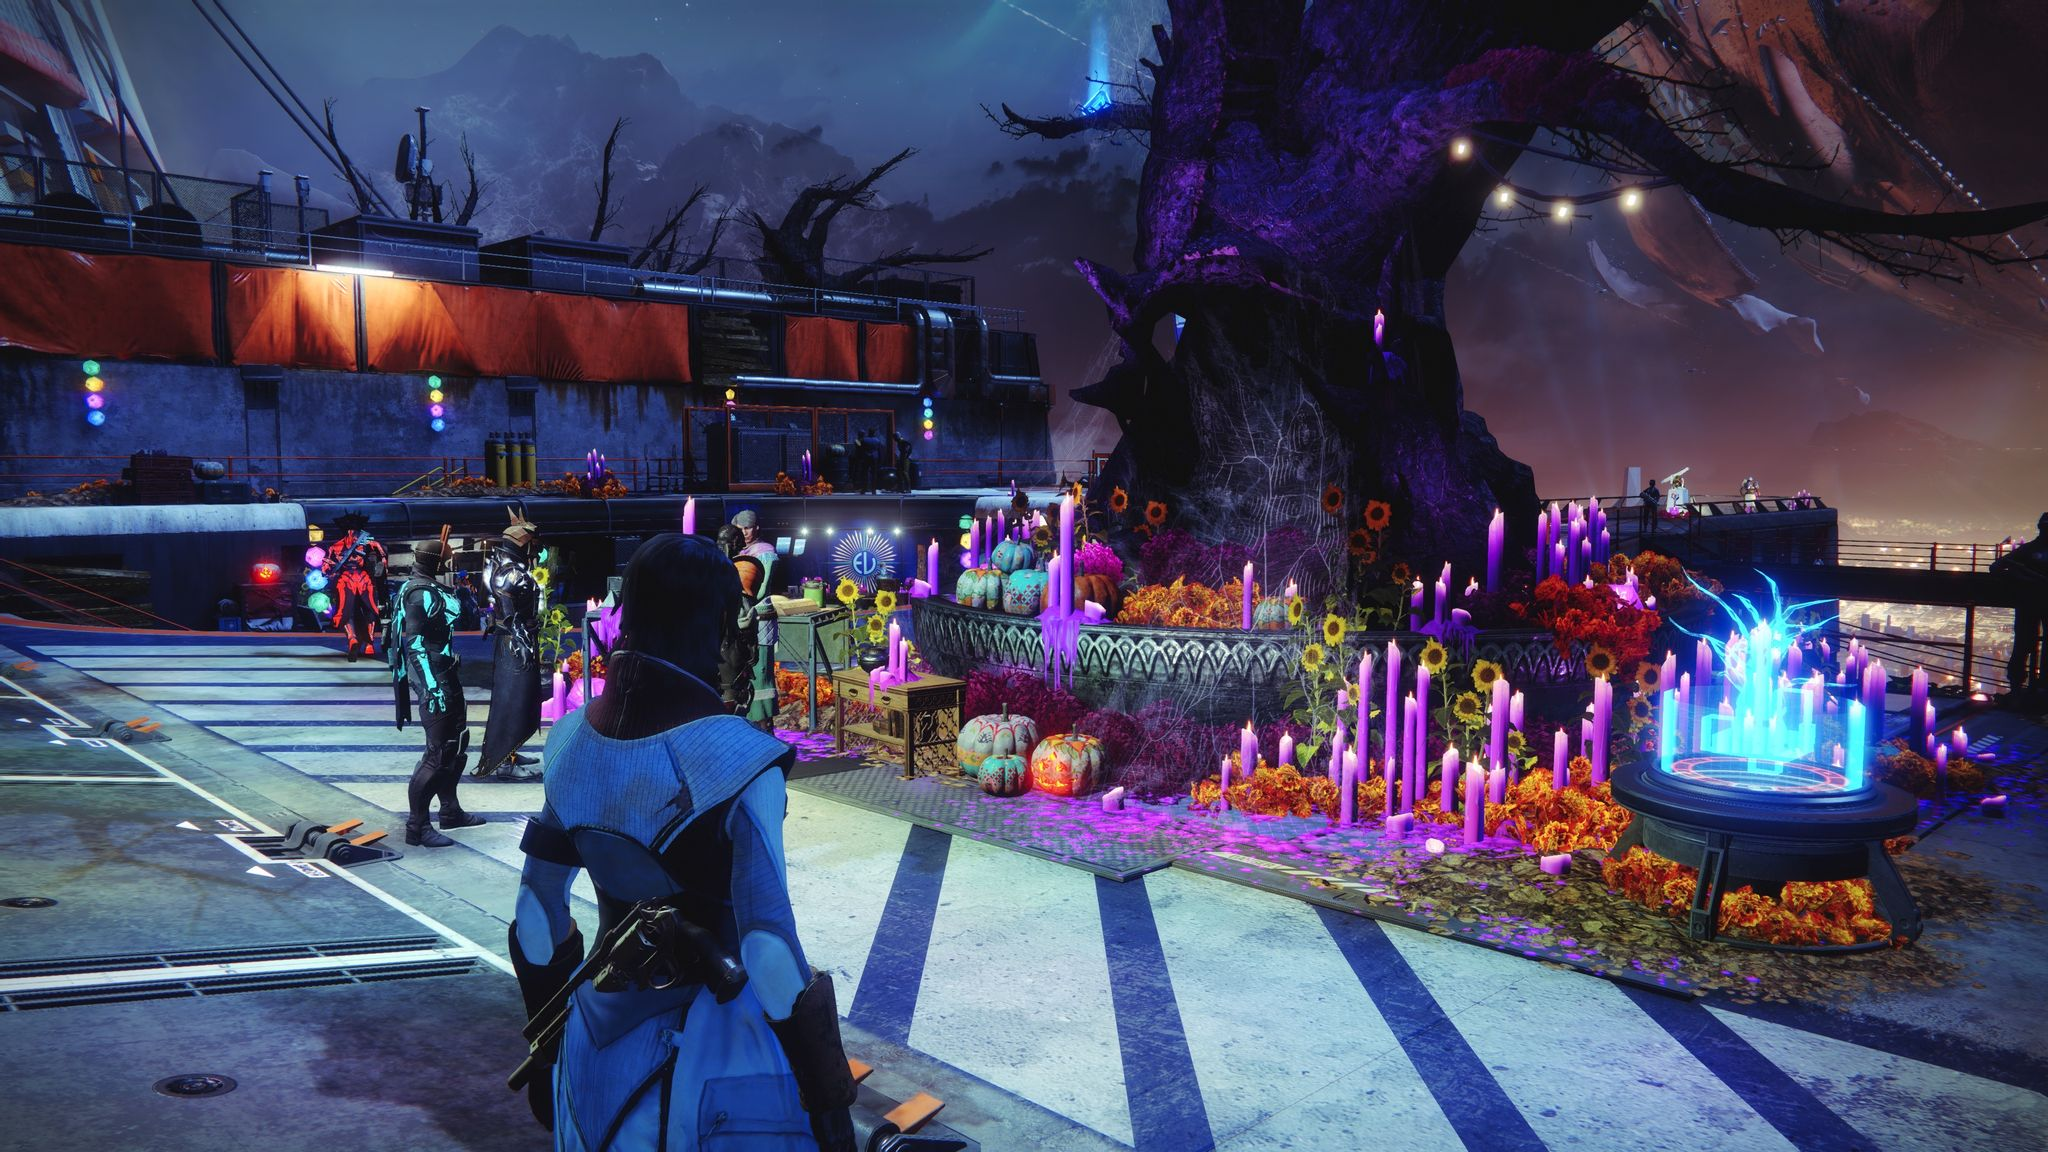 A screenshot from Destiny 2 showing a big gnarled tree in the middle of the Tower social space with lots of tall purple candles around the base of it. There's some pumpkins visible and also glowing paper-looking lights in the shape of a dodecahedron (note: might not actually be one, but that general geometric shape).